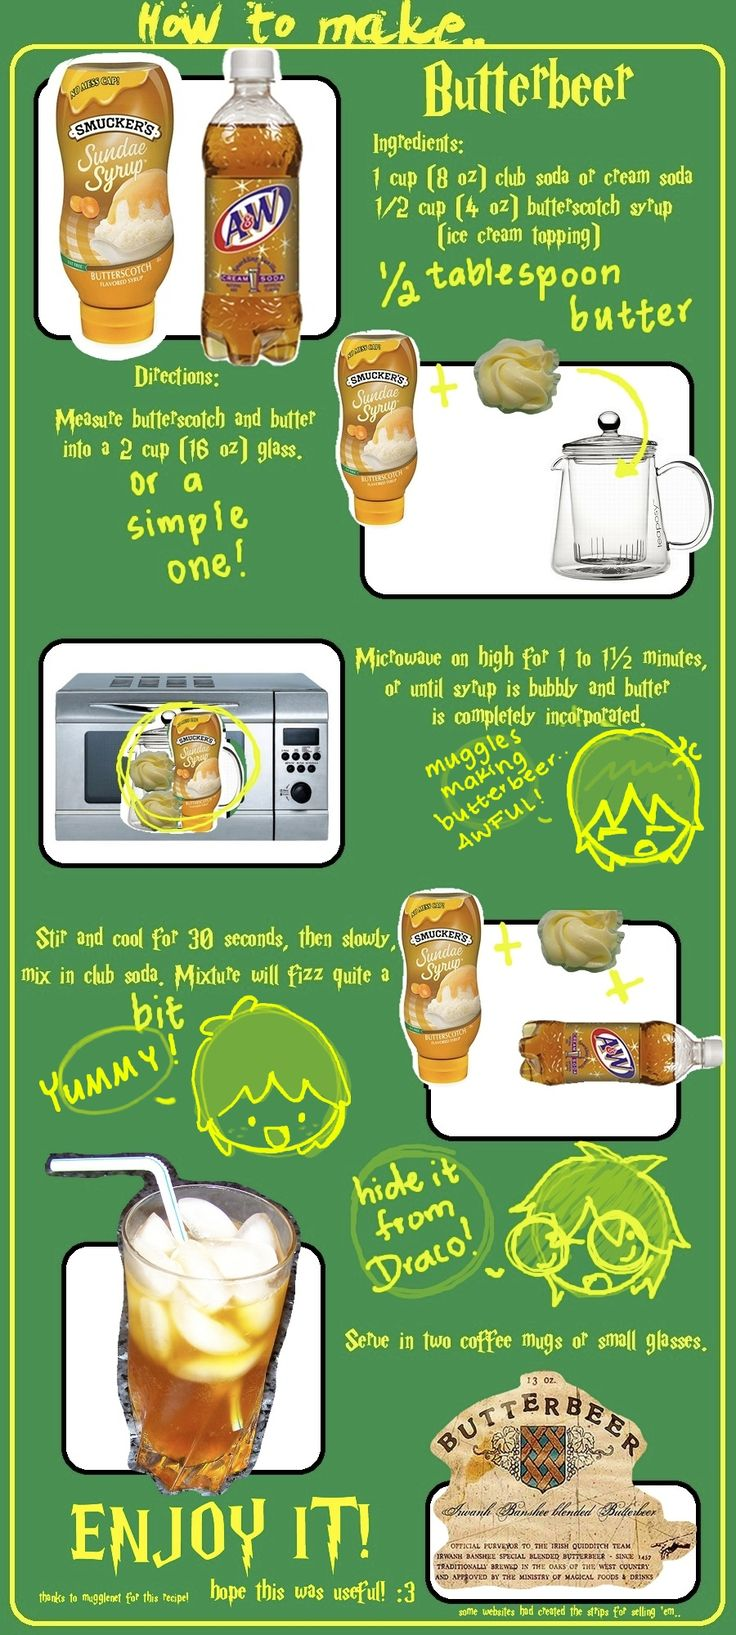 How to make ButterBeer by ozymandias93.deviantart.com on @deviantART